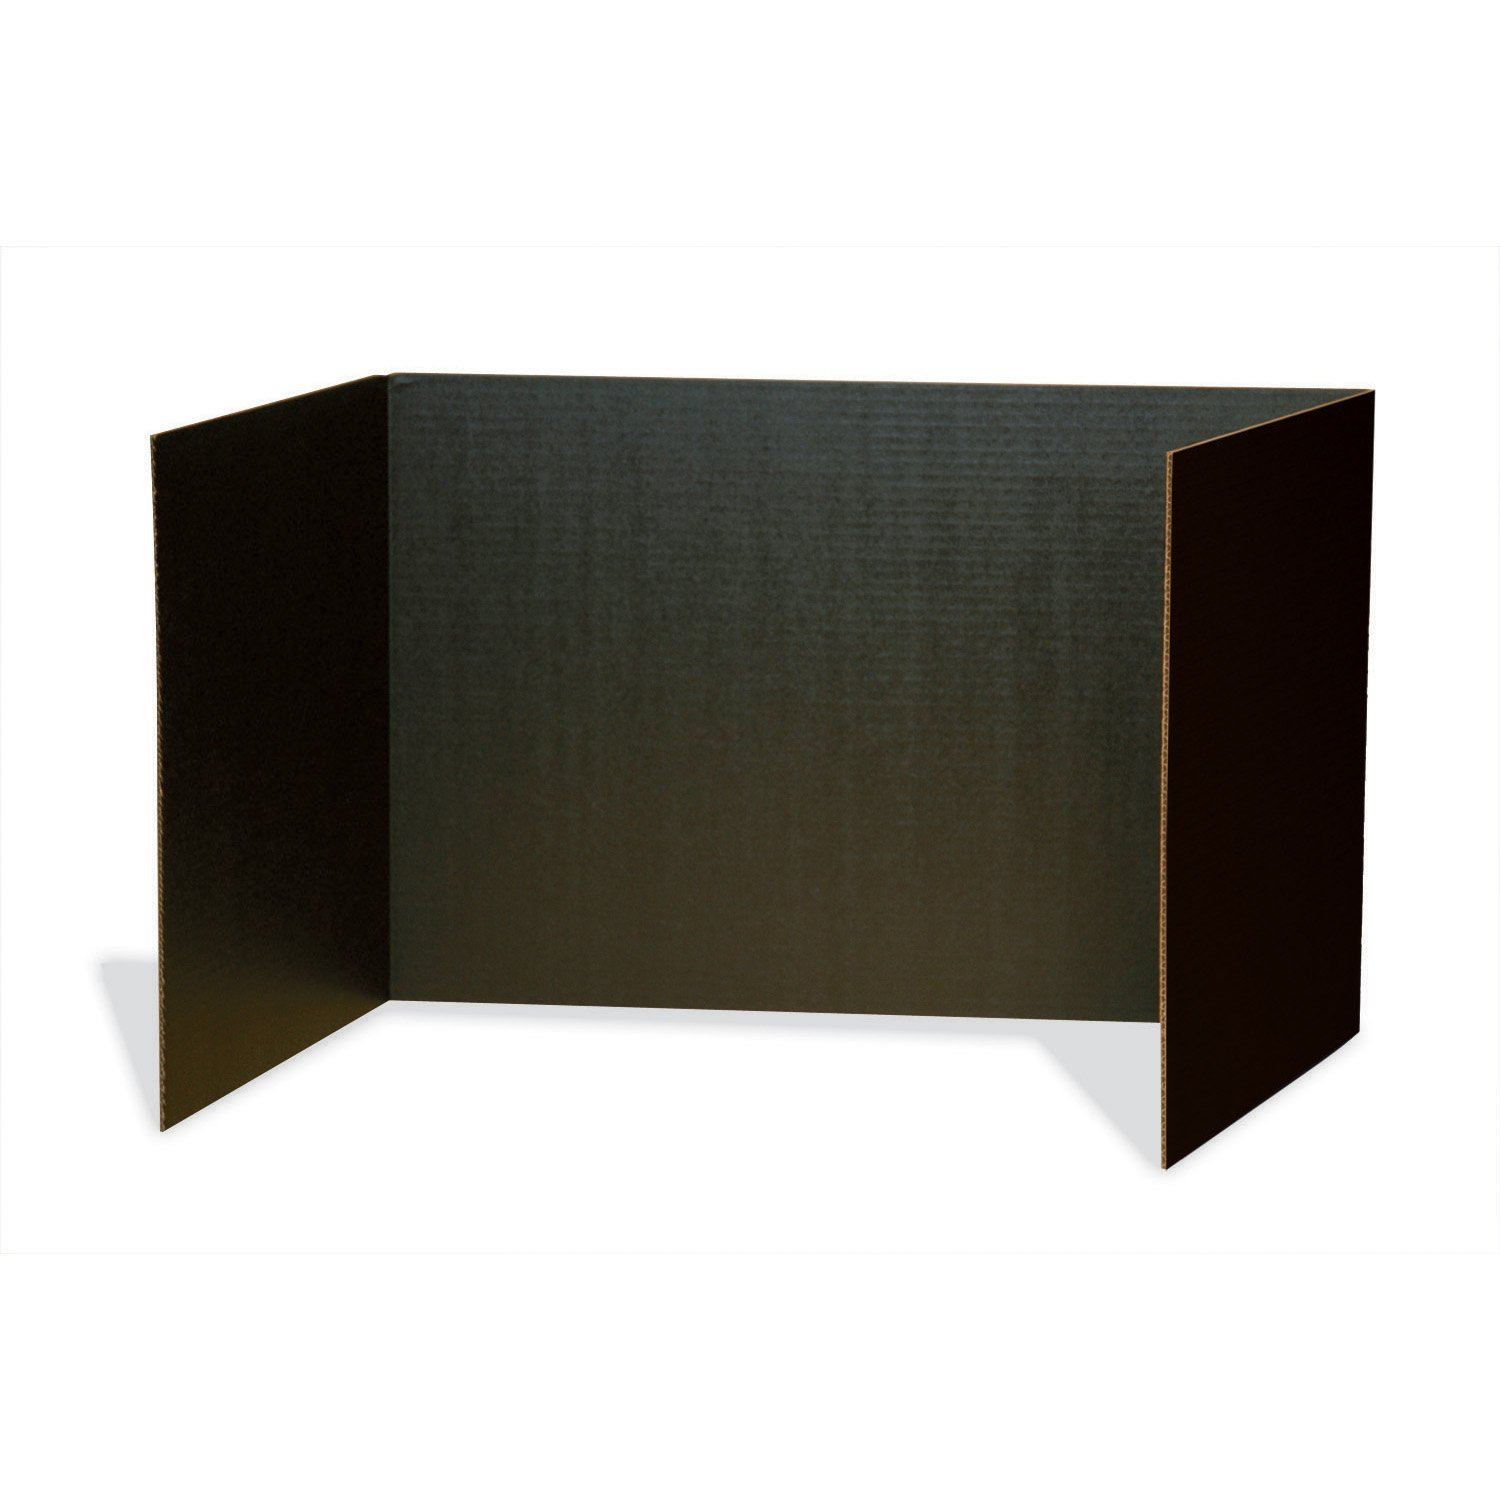 Pacon Privacy Boards, Black, 48 x 16, 4 Boards (3791) 48 x 16 Pacon Corp.